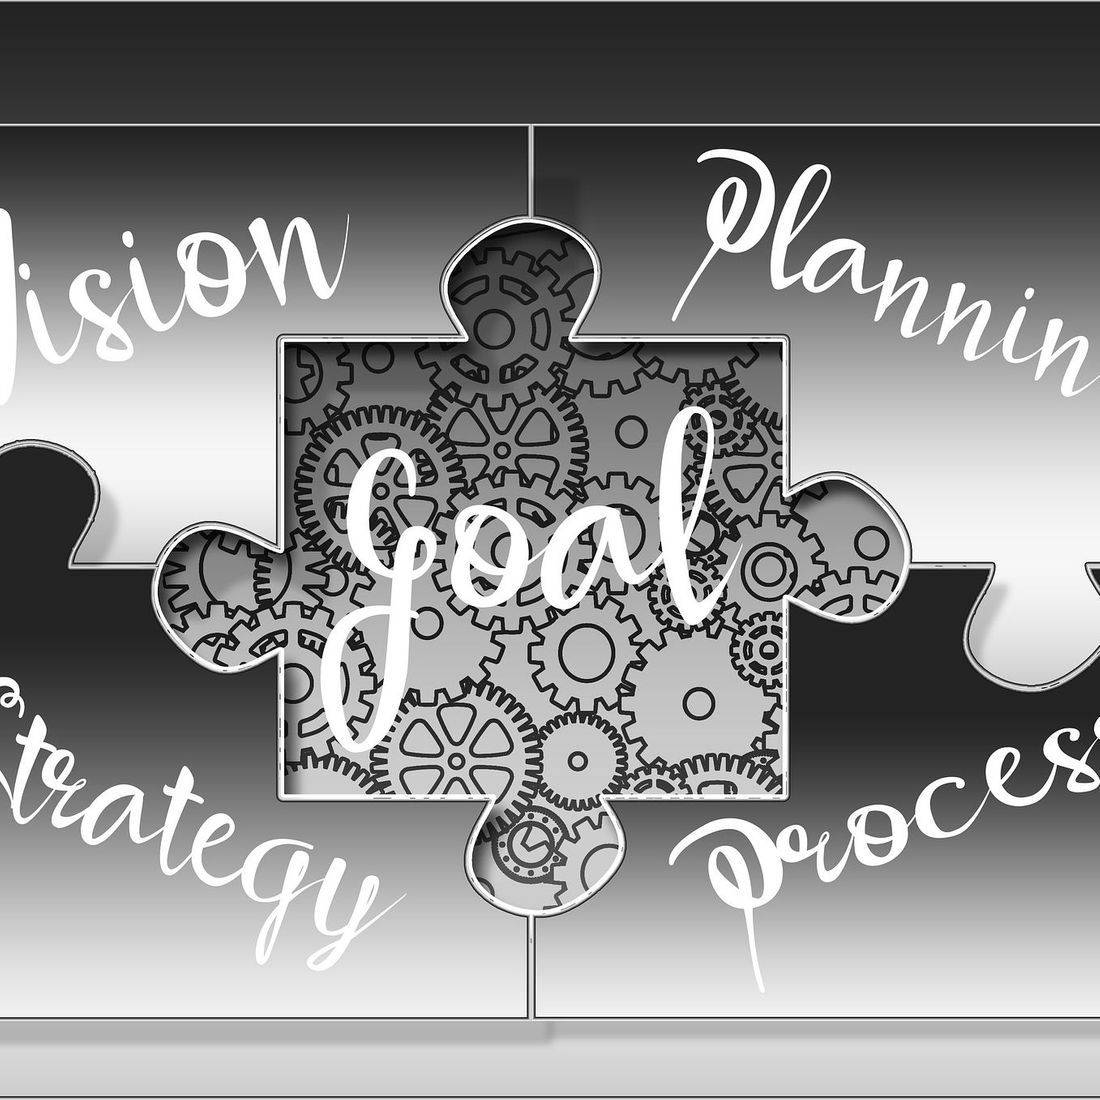 opportunity, marketing strategy, business, free consultations